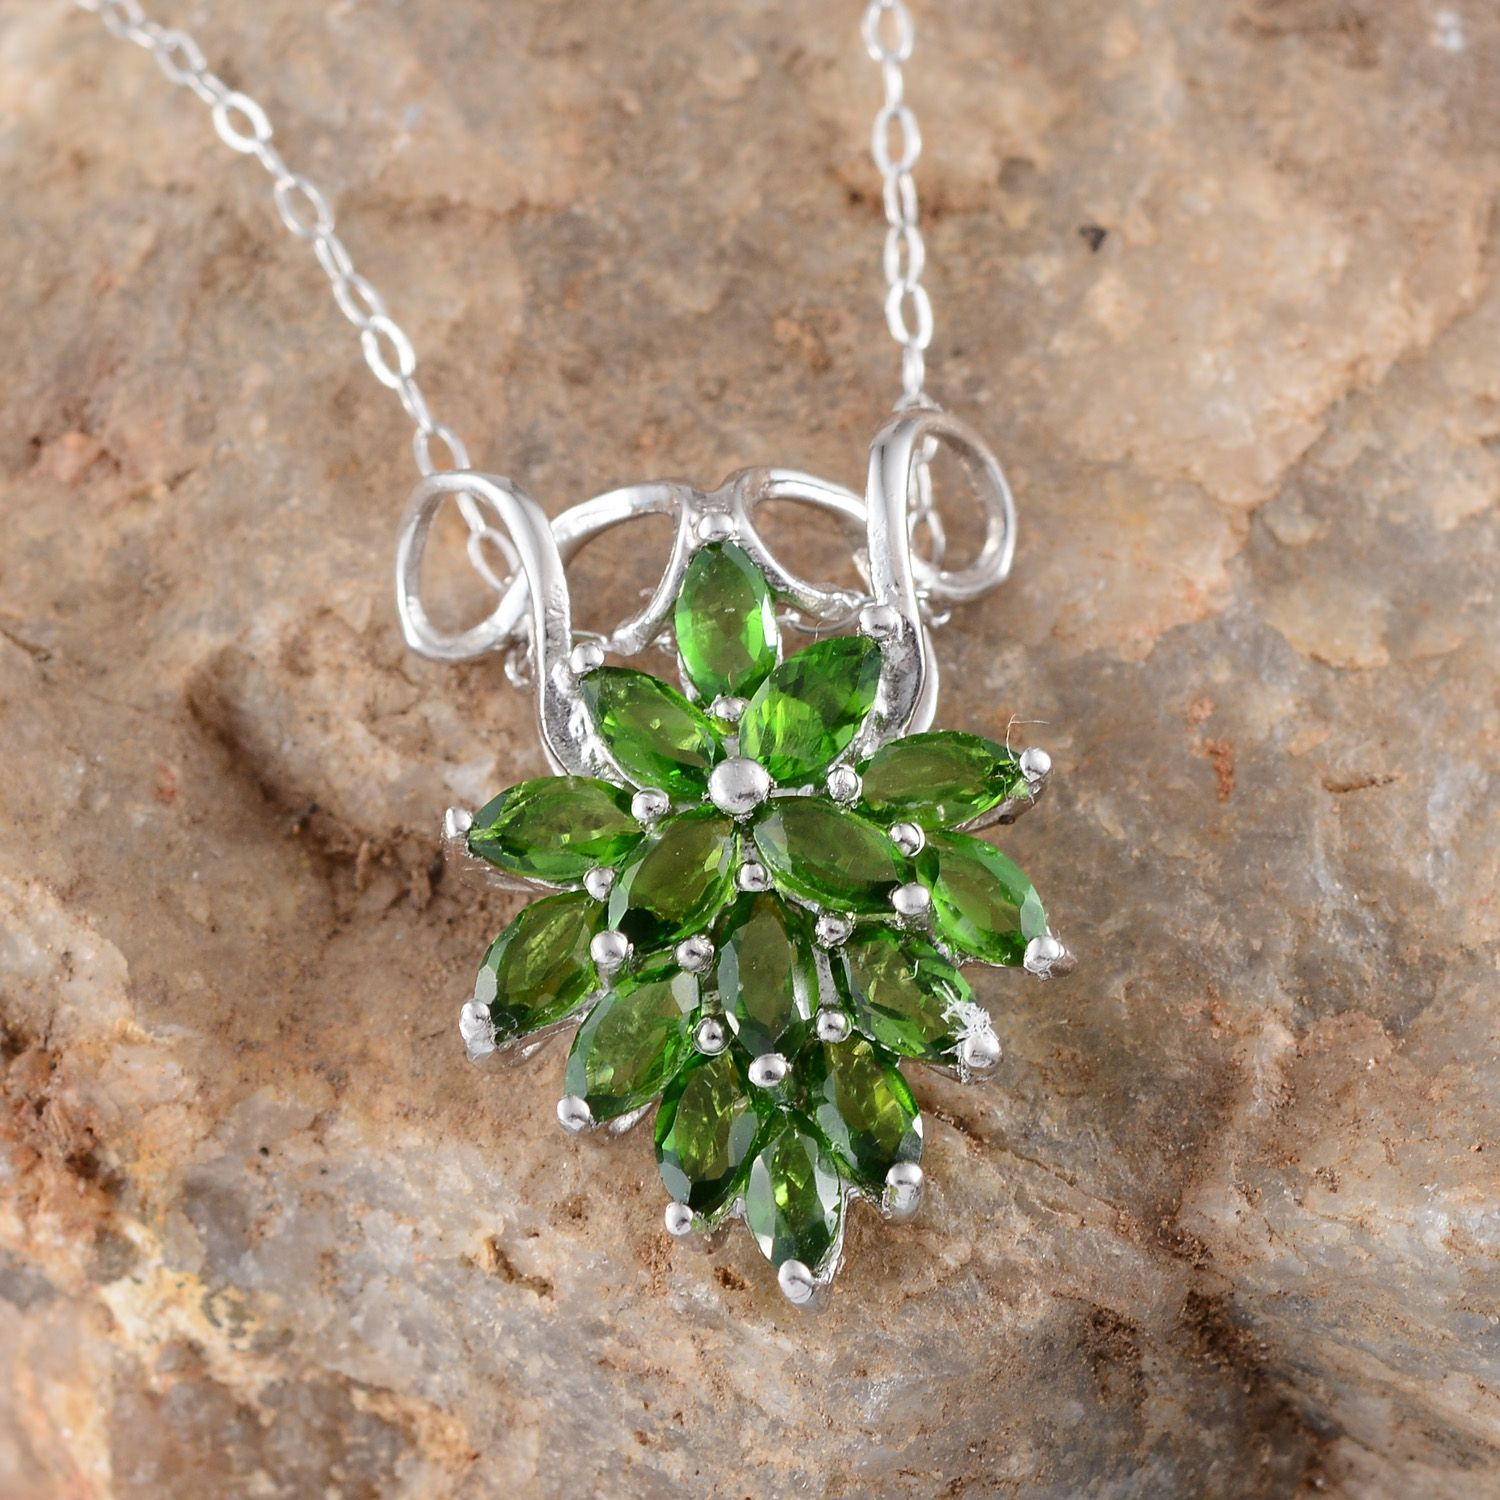 Liquidation channel russian diopside pendant with chain 18 in in liquidation channel russian diopside pendant with chain 18 in in sterling silver nickel free russian diopside jewelry pinterest chains aloadofball Images